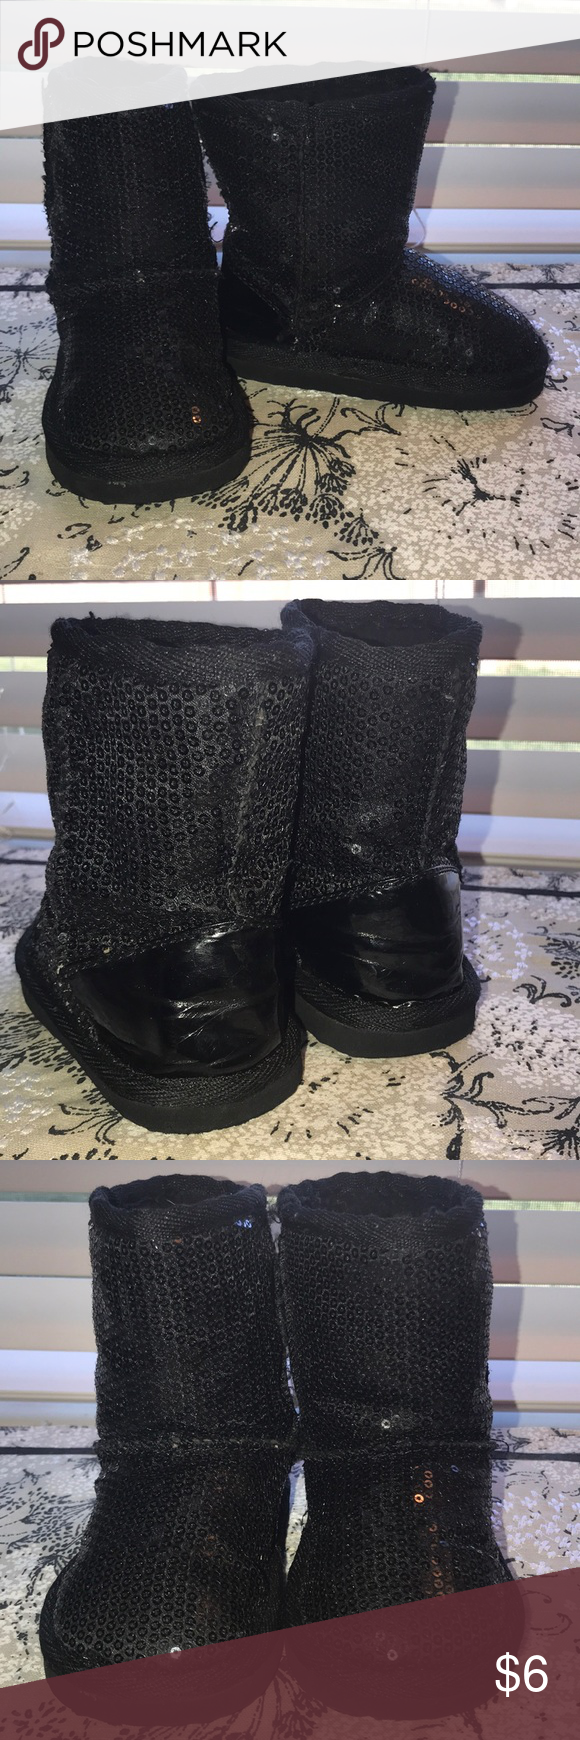 Warm and glittery boots Black sequined boots, warmly lined for those cold or cool days. In very good used condition. Size 6. Smoke free and pet friendly home. Shoes Boots